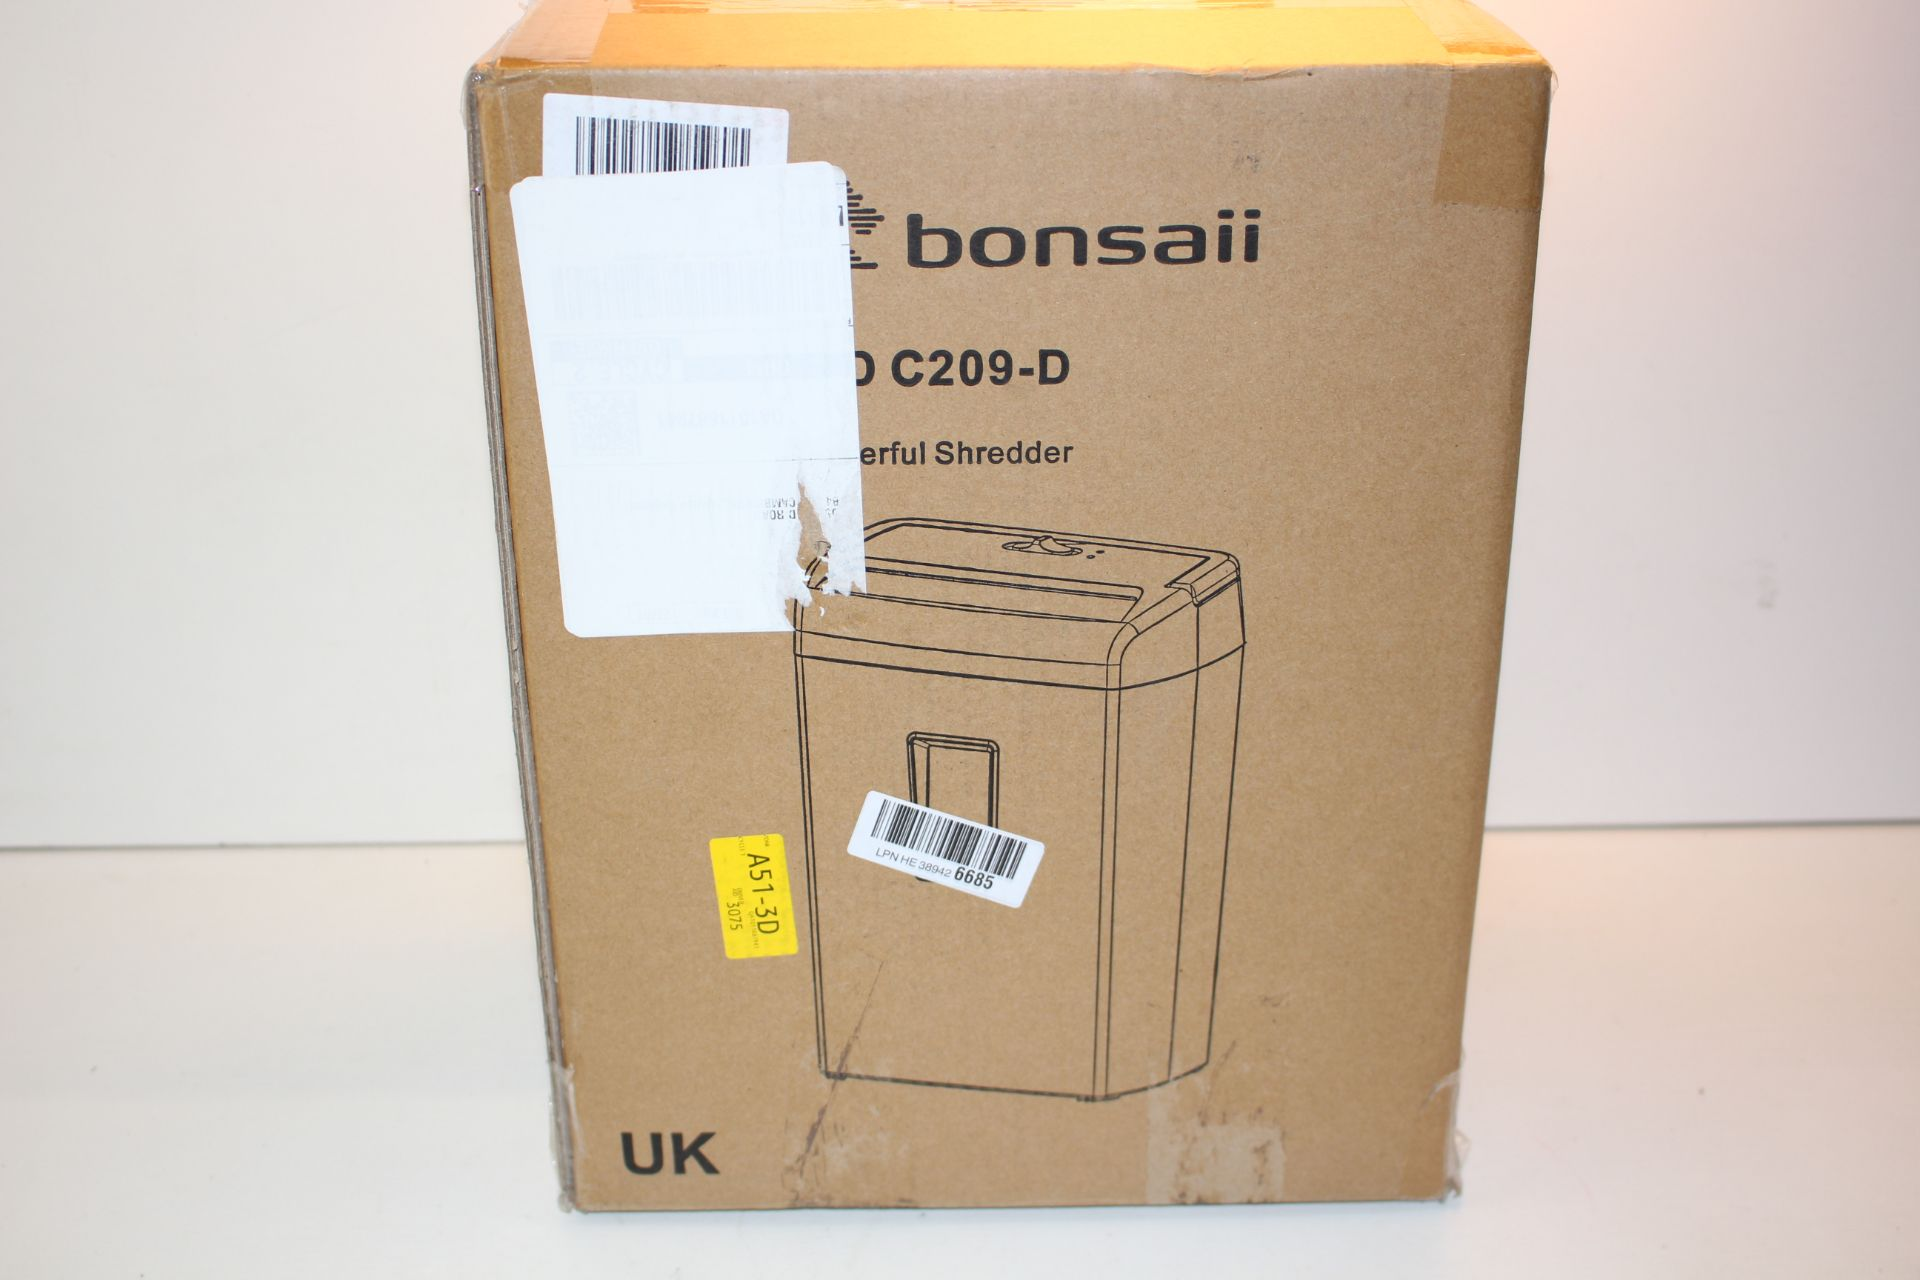 BOXED BONSAII DOCSHRED C209-D PAPER SHREDDER RRP £62.99Condition ReportAppraisal Available on